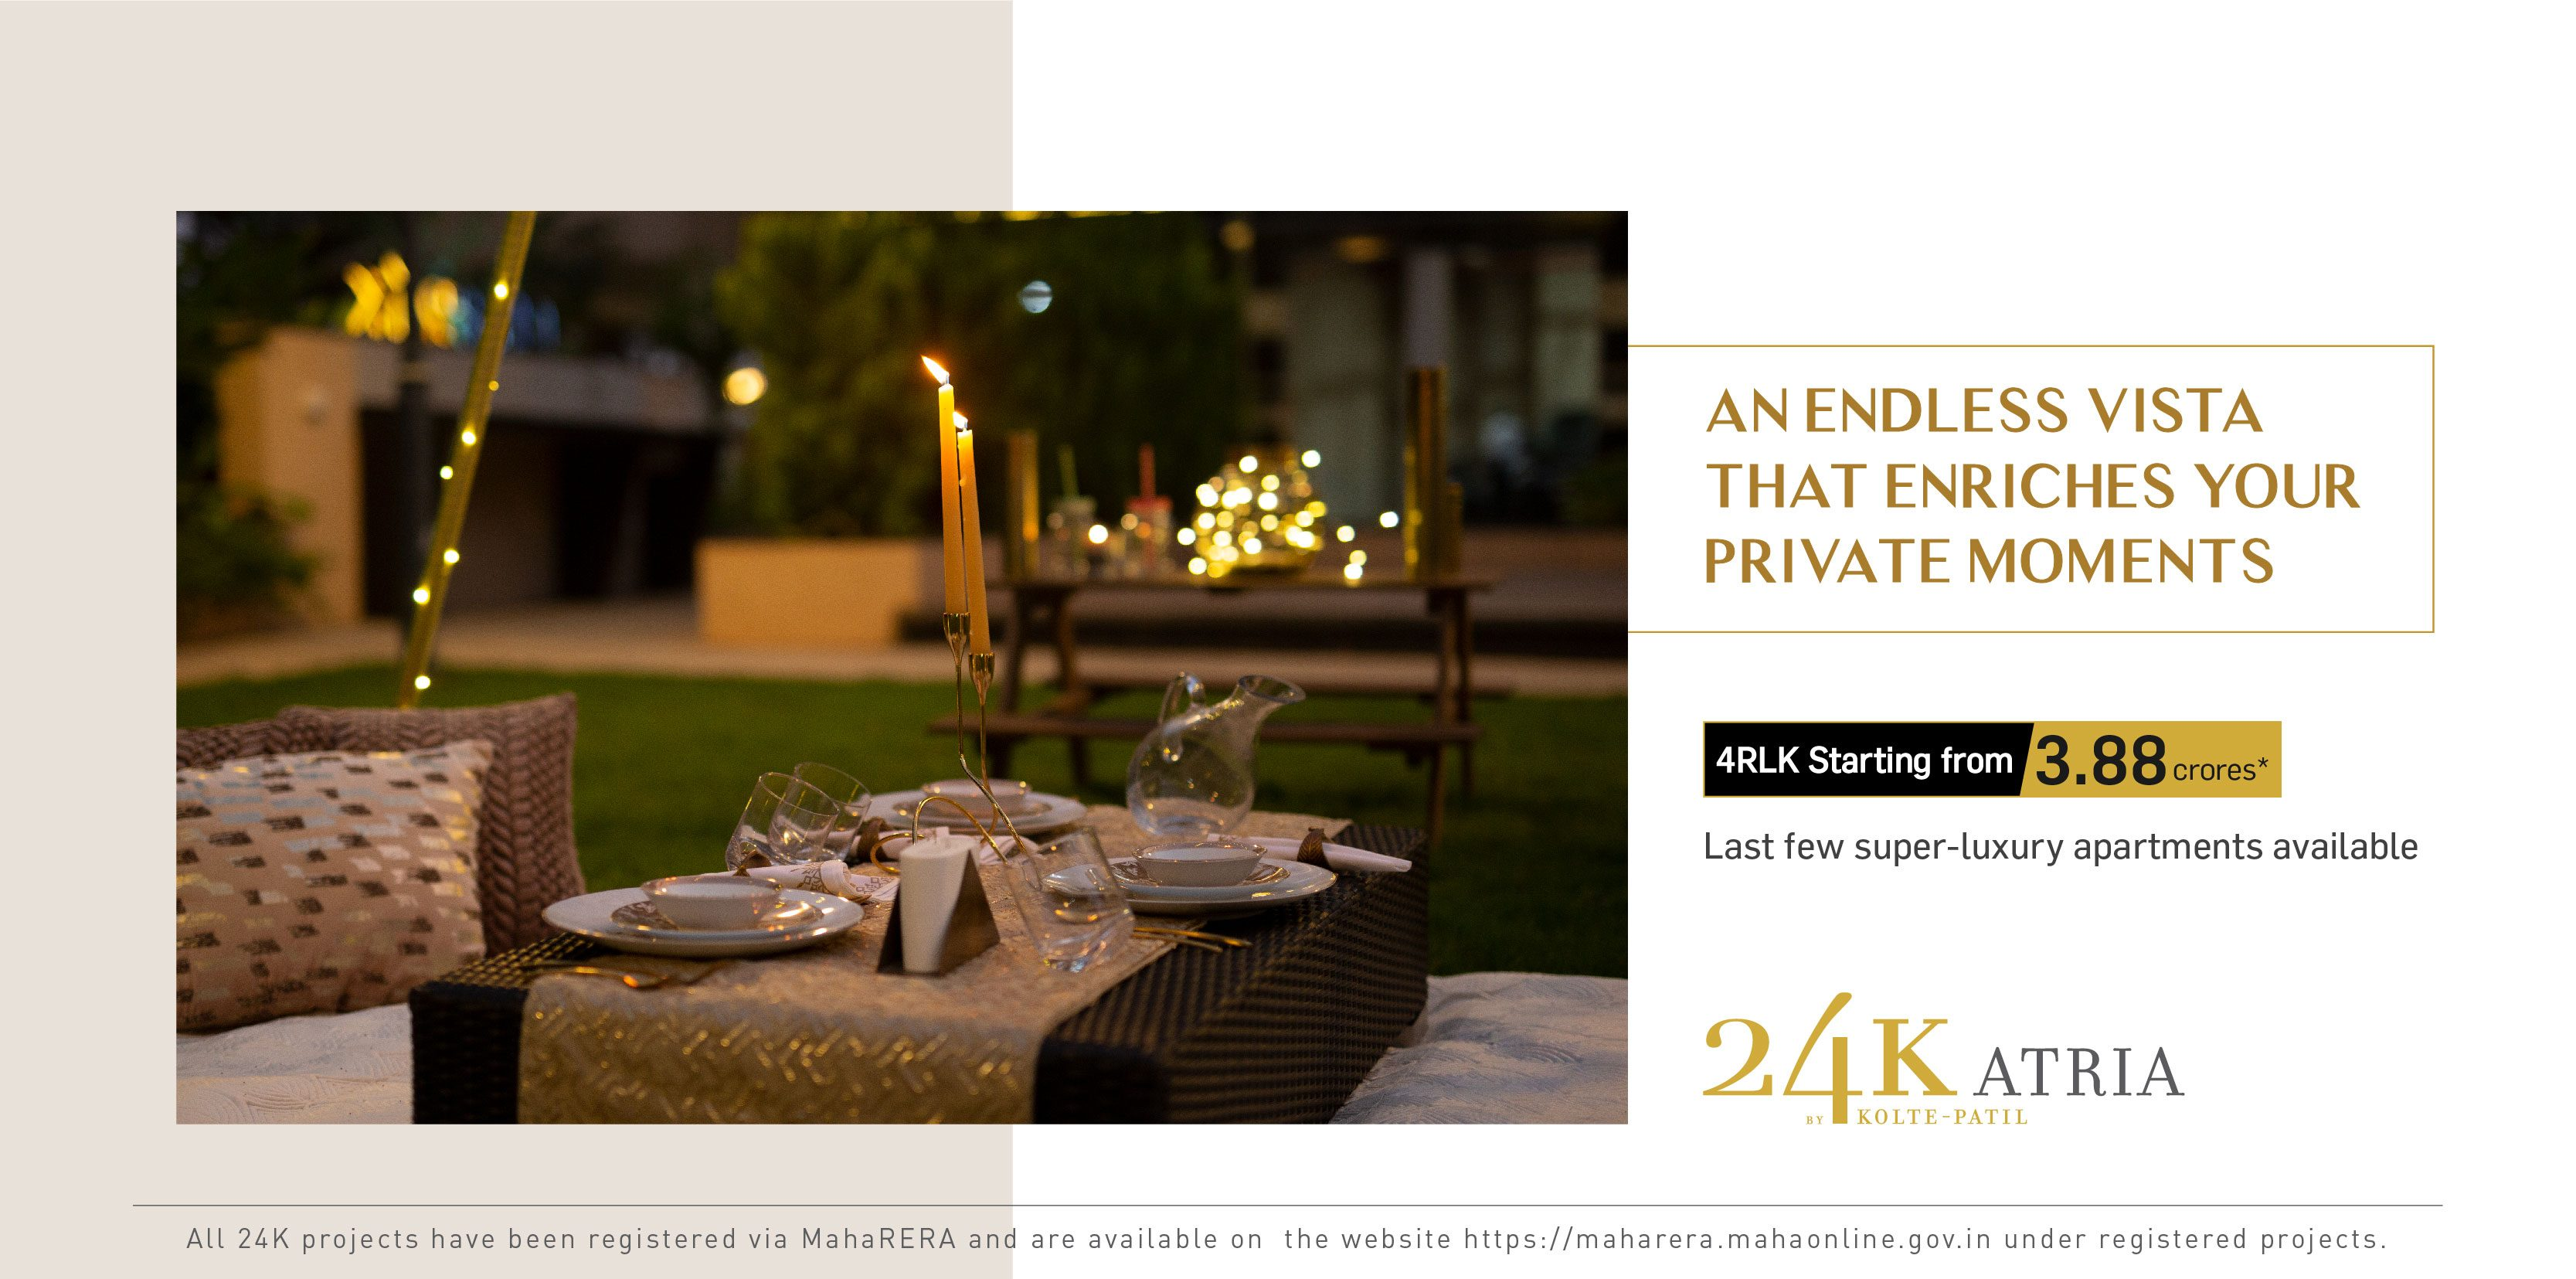 Kolte patil,best real estate developers in pune, 24k living